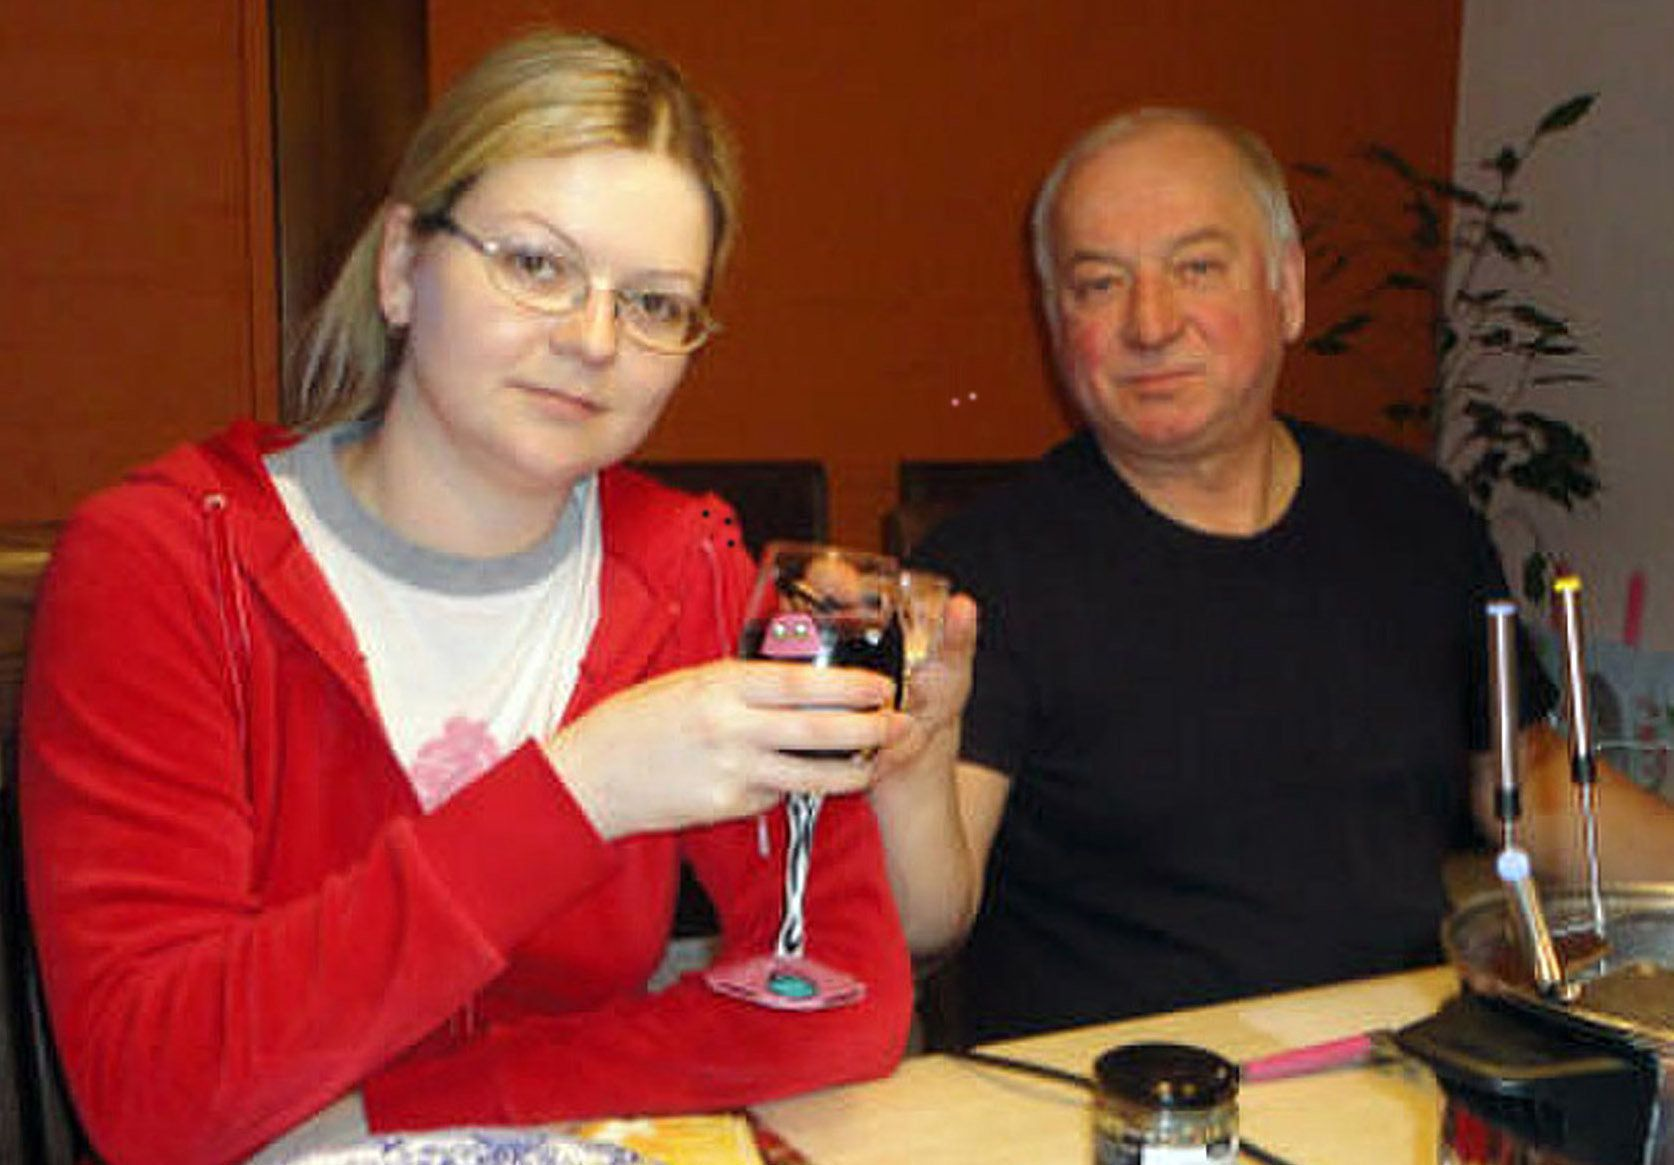 Identity Of Suspected Perpetrators Of Chemical Attack On Sergei And Yulia Skripal Reportedly